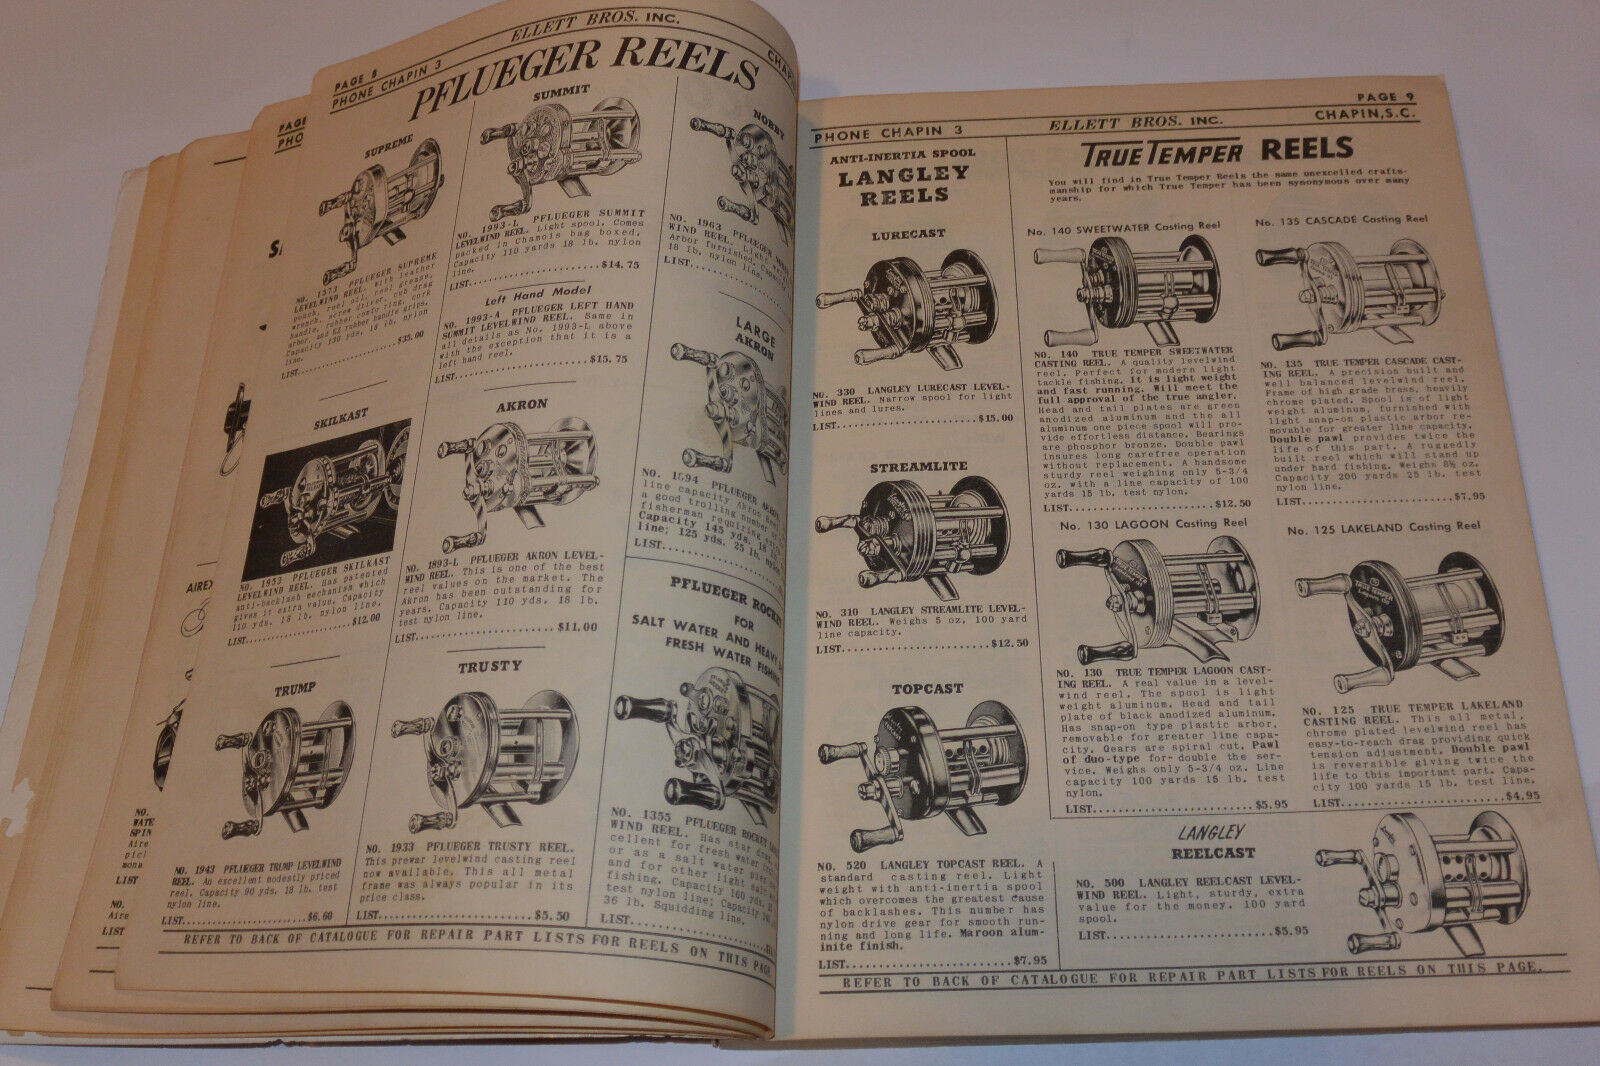 VINTAGE 1955 FISHING SUPPLIES DEALER CATALOG  RODSREELSLURESBOATSPFLUEGER